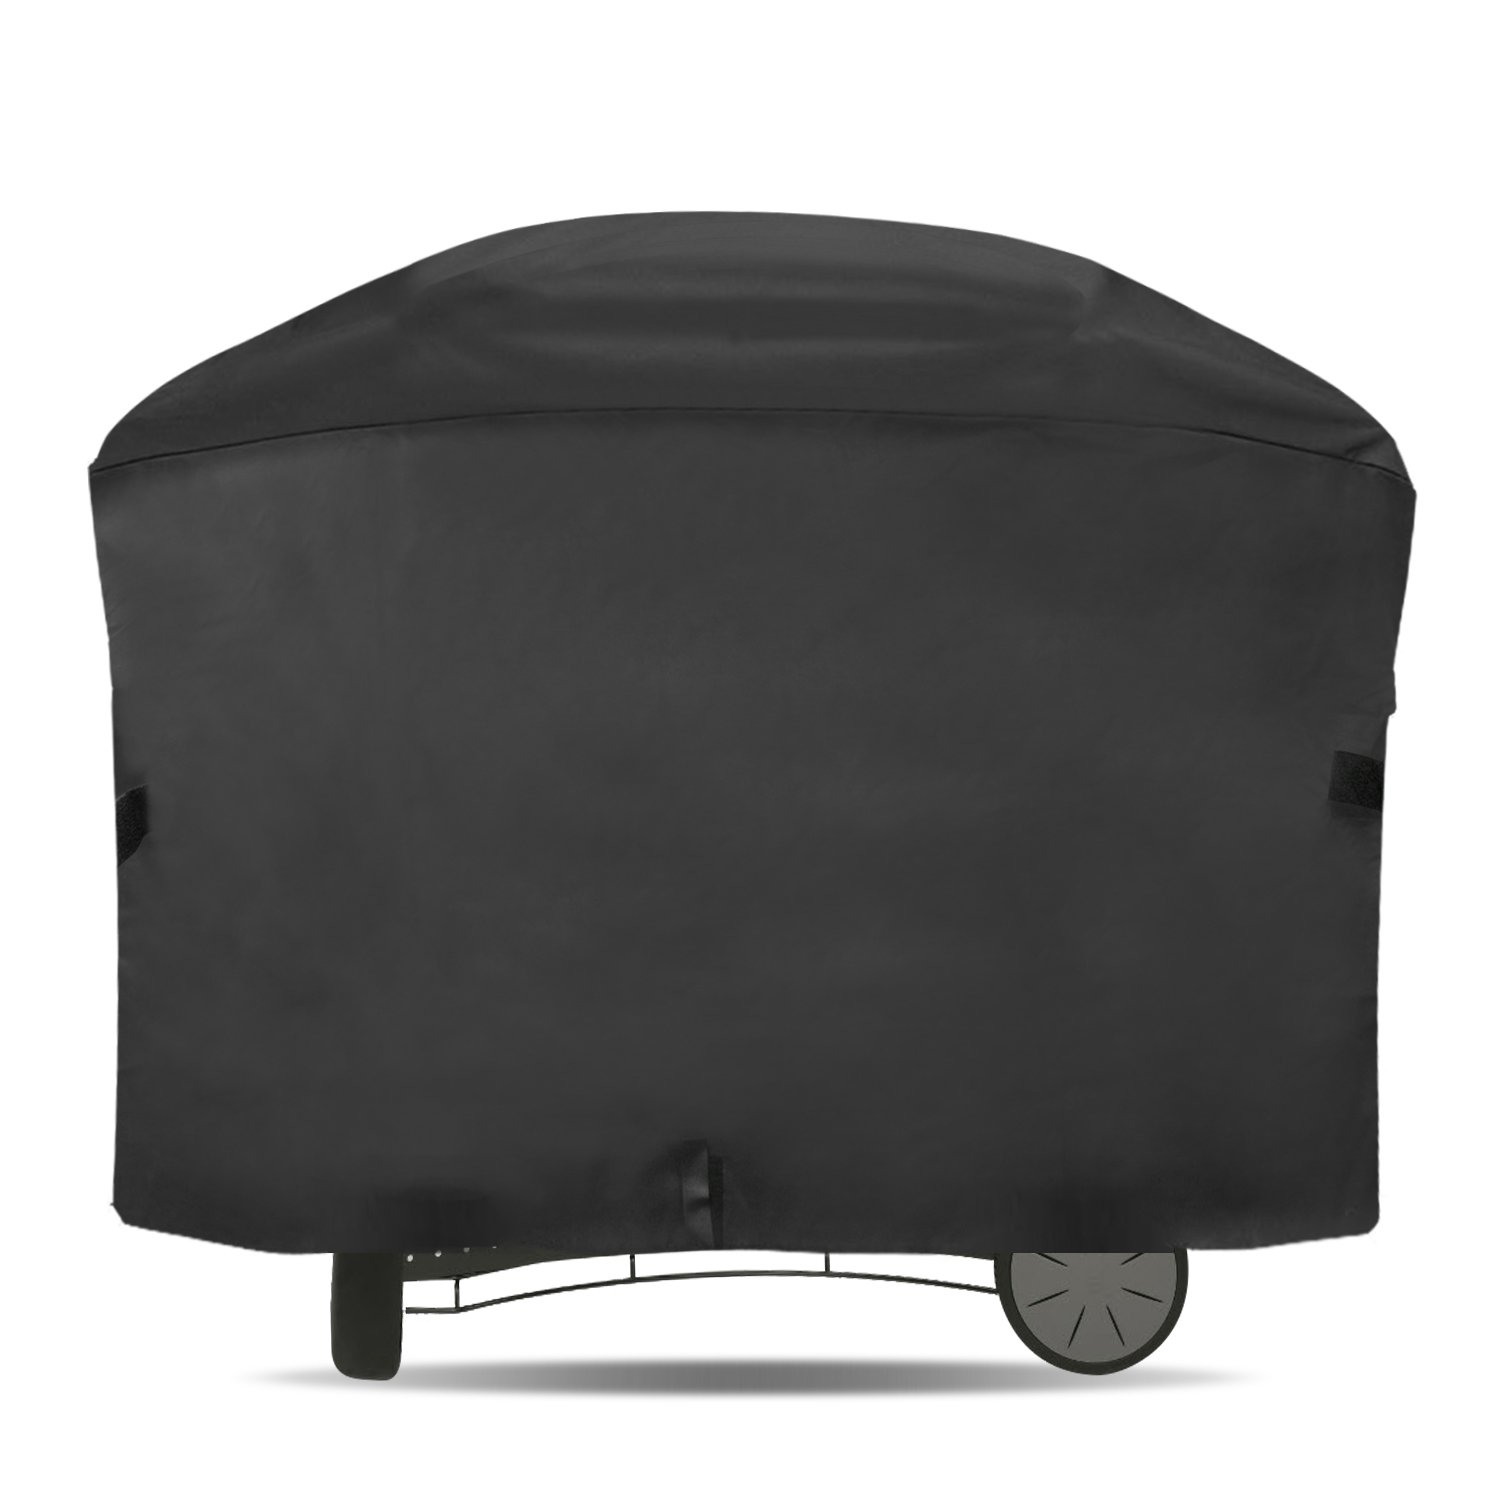 """Onlyfire 57-inch BBQ Gas Grill Cover Fits for Weber Q 2000 and 3000 Series Gas Grill Char-Broil Nexgrill Brinkmann and More(57""""L22.5""""W39""""H)"""